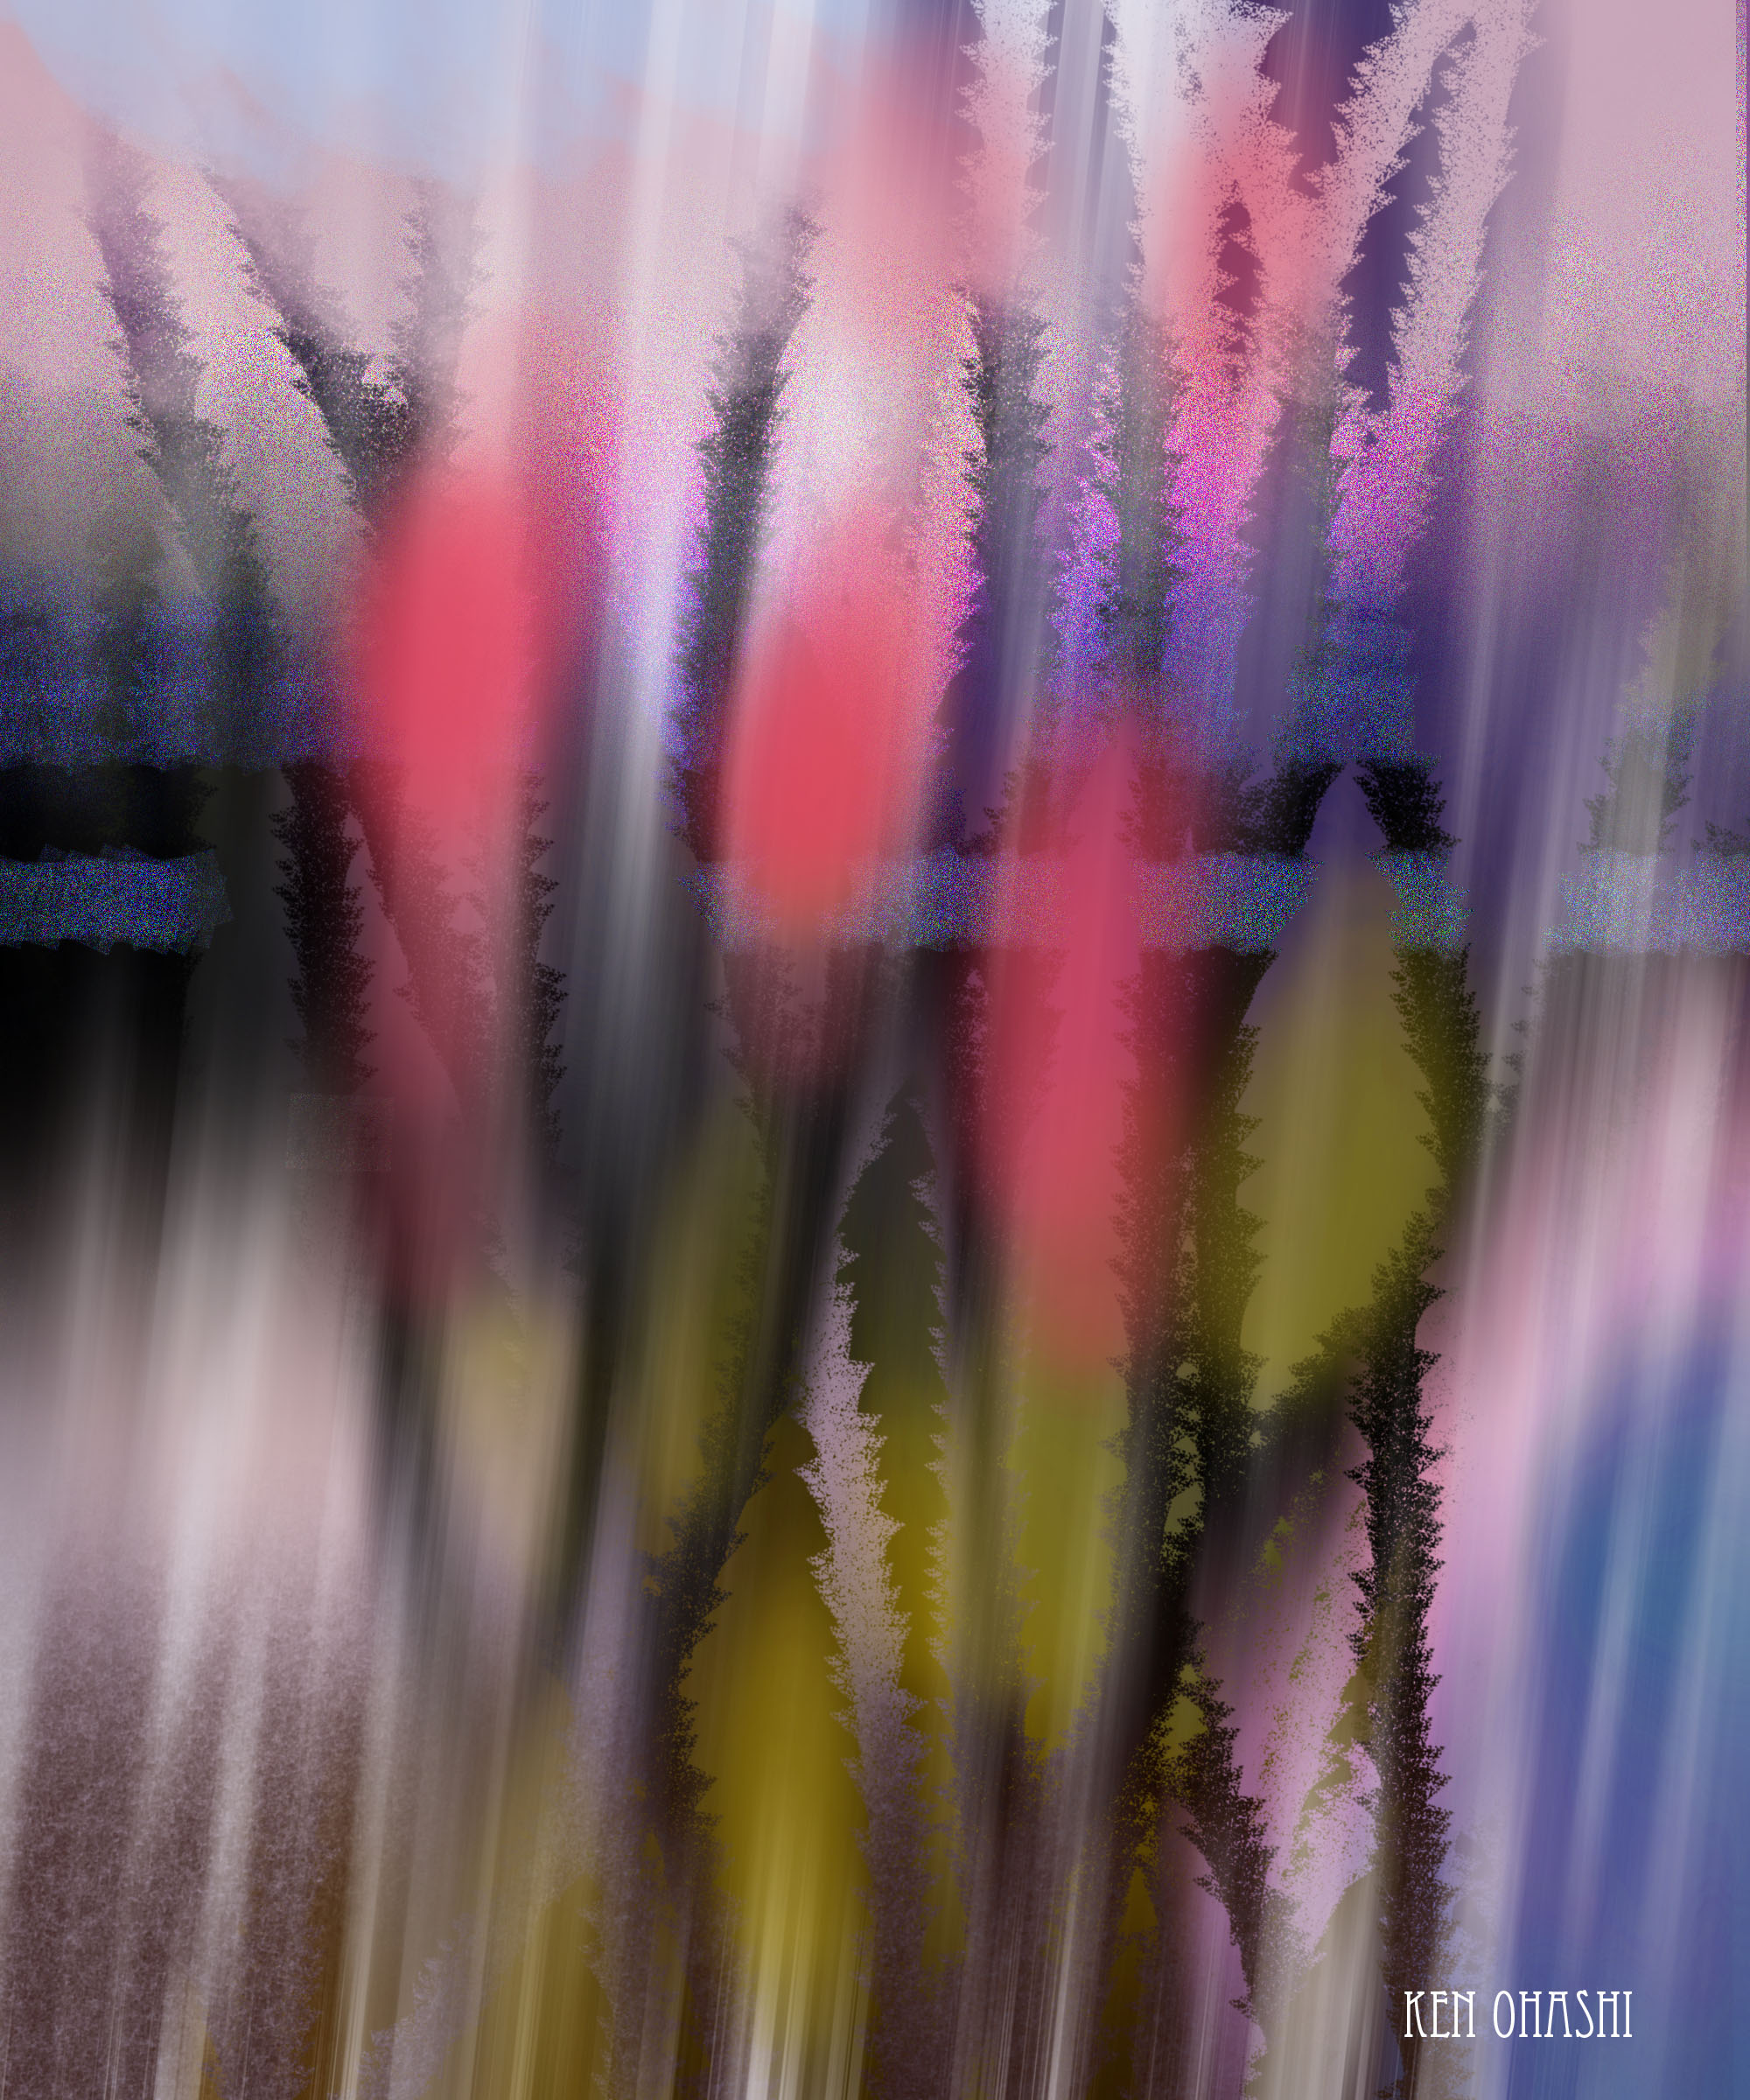 Abstraction_20100813_02